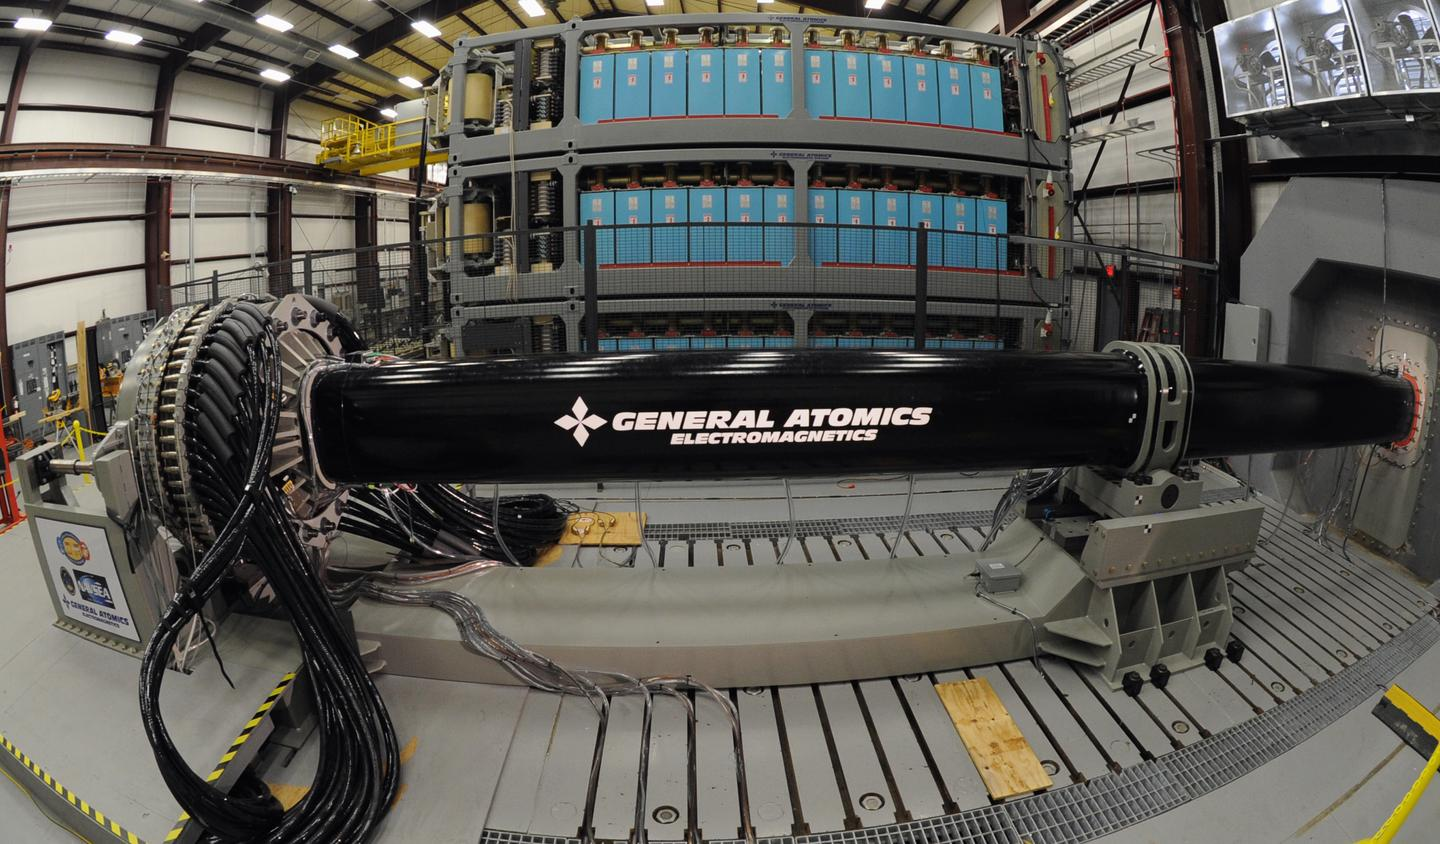 US Atomics railgun (Image: US Navy/John F. Williams)